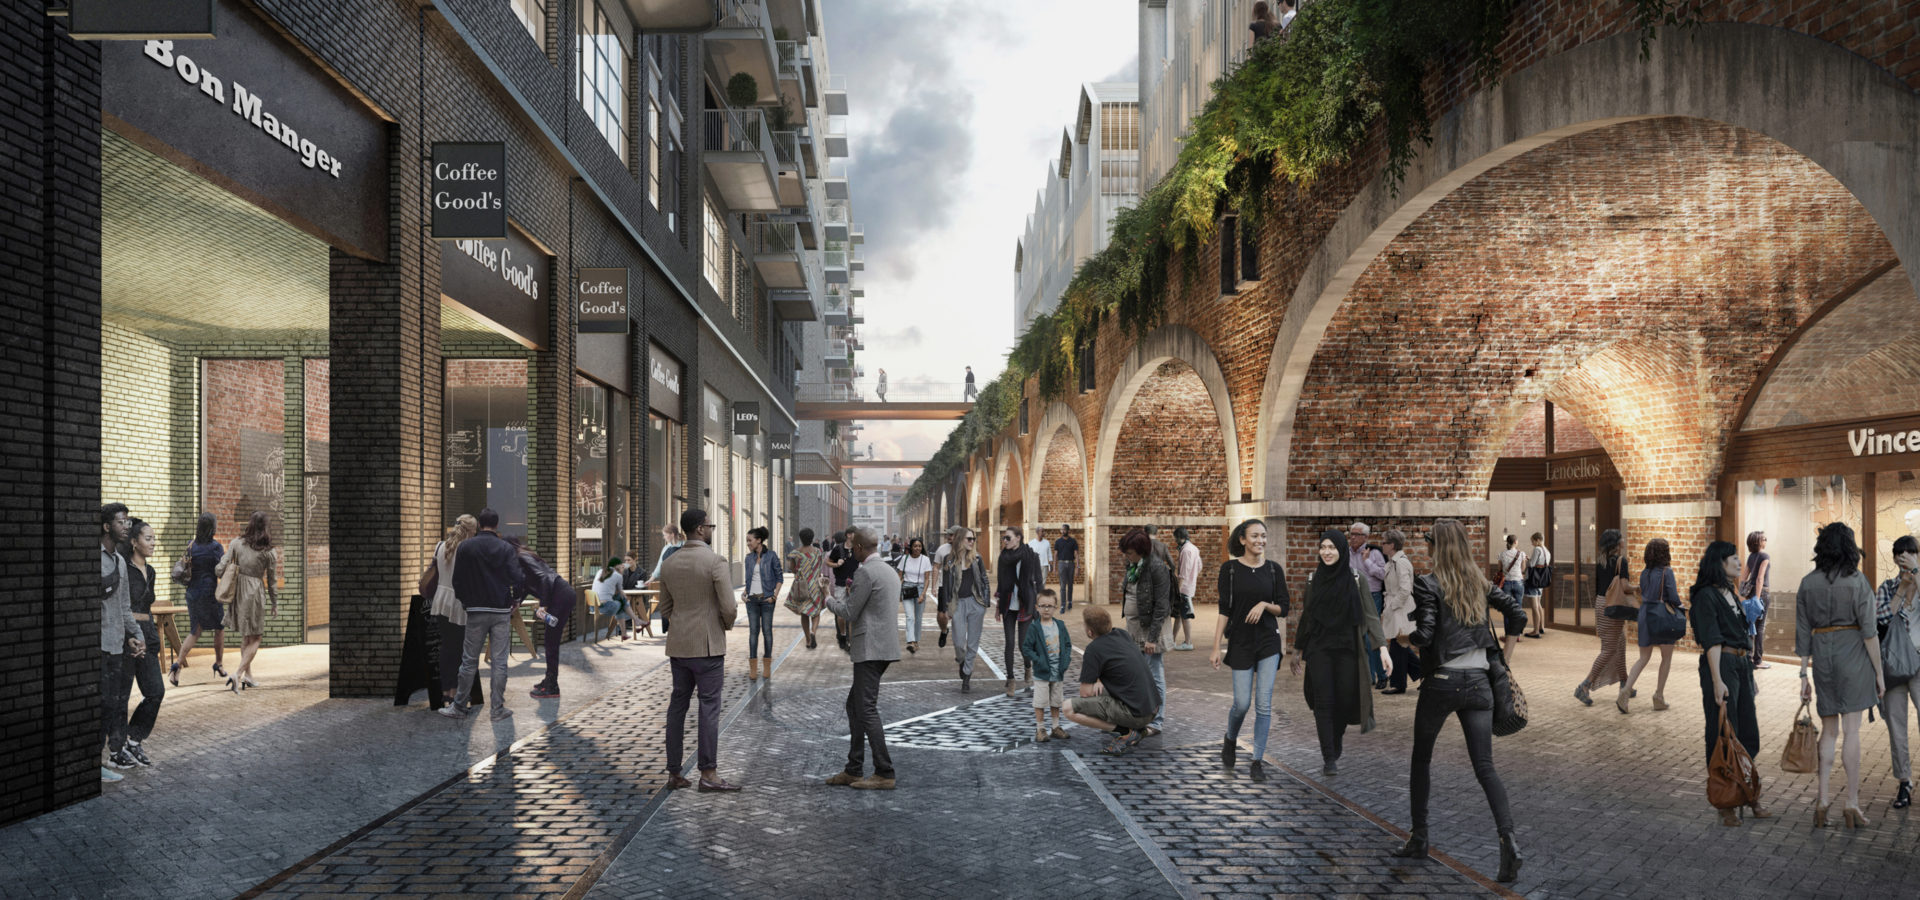 The Goodsyard London Masterplan Arches Retail Middle Road Hh